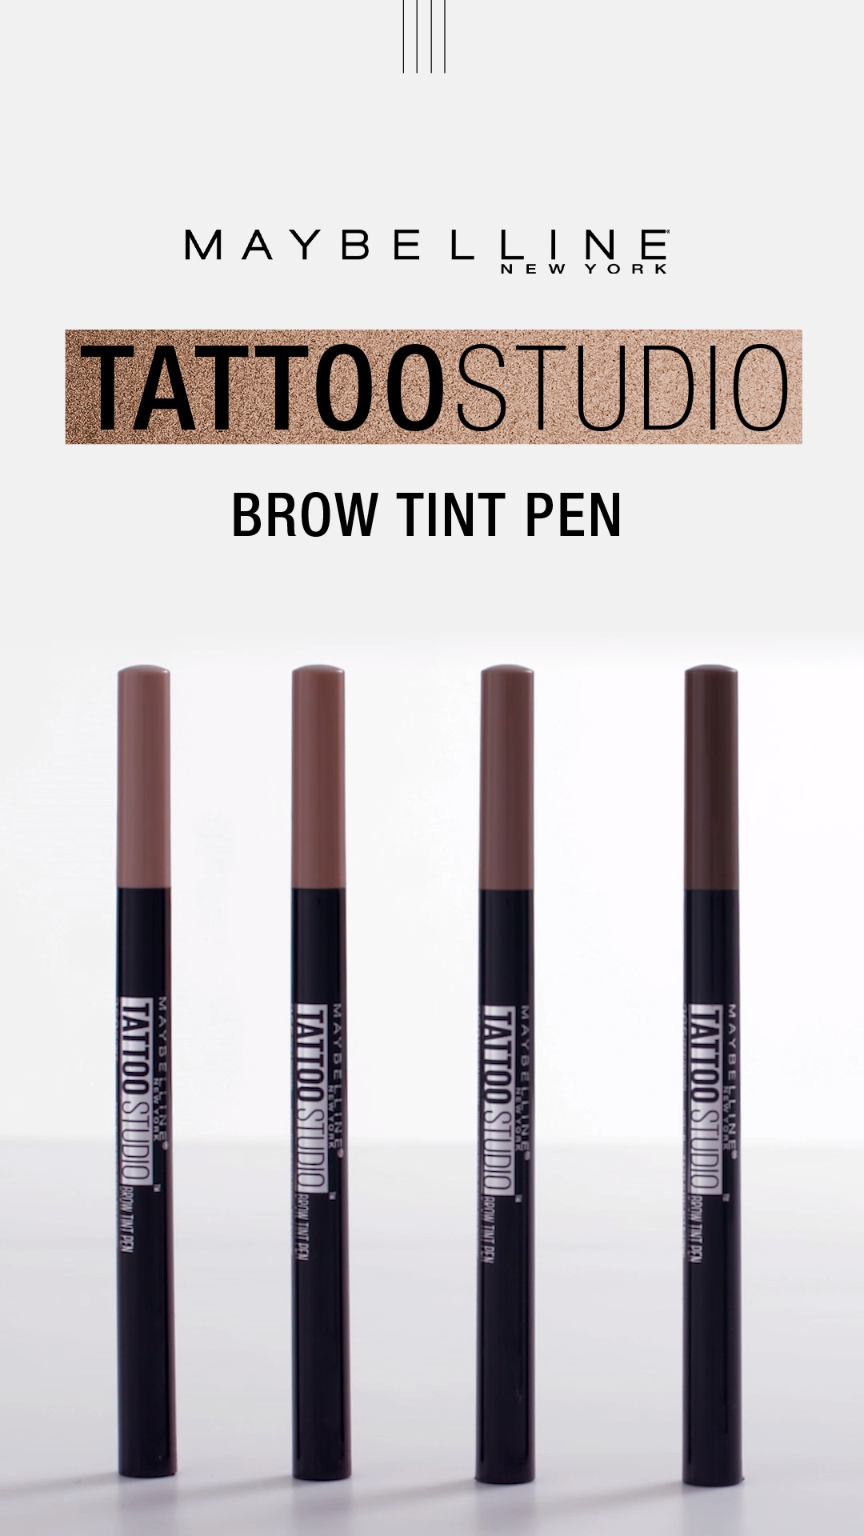 Top 5 Best Maybelline Tattoo Brow Ink Pen 2020 (With